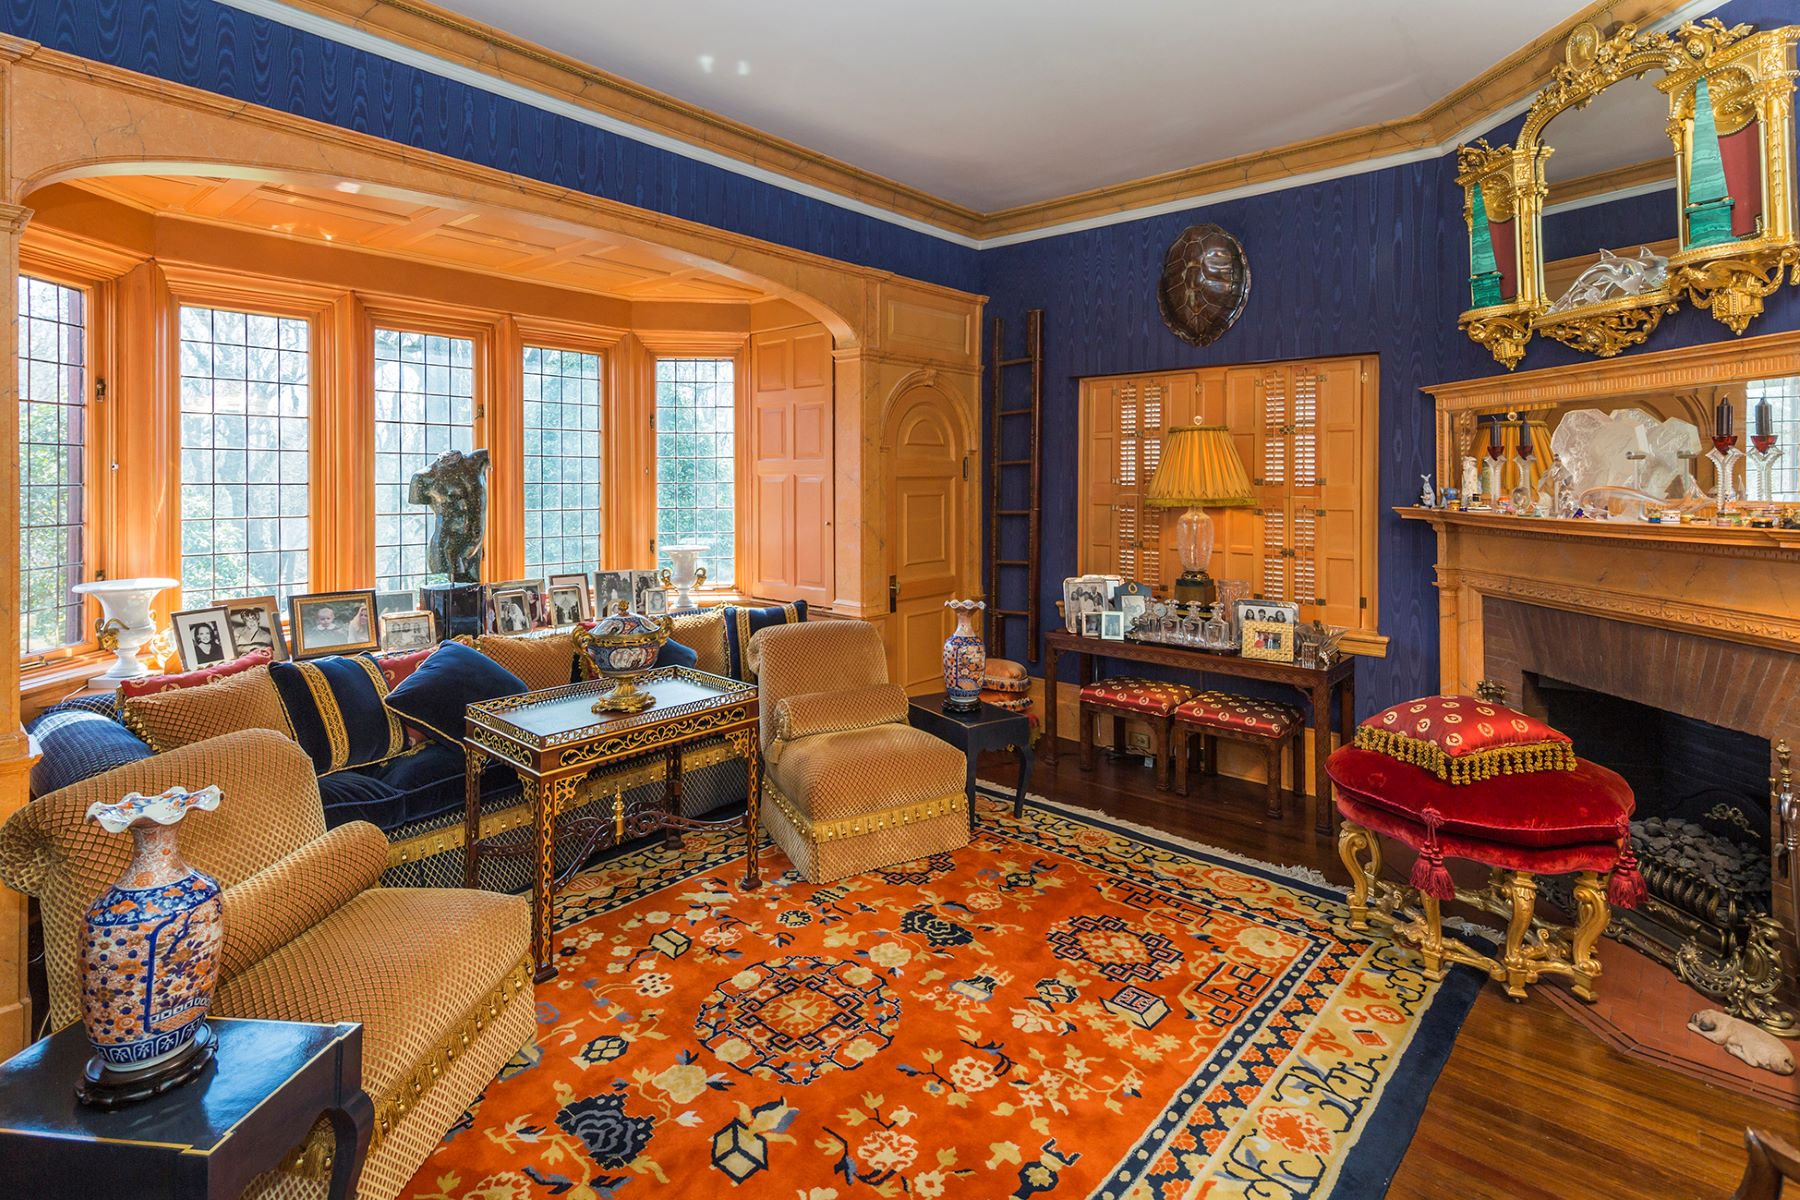 Additional photo for property listing at Great Warmth Amid Turn-of-the-Century Ambiance 2 Constitution Hill East, Princeton, New Jersey 08540 United States